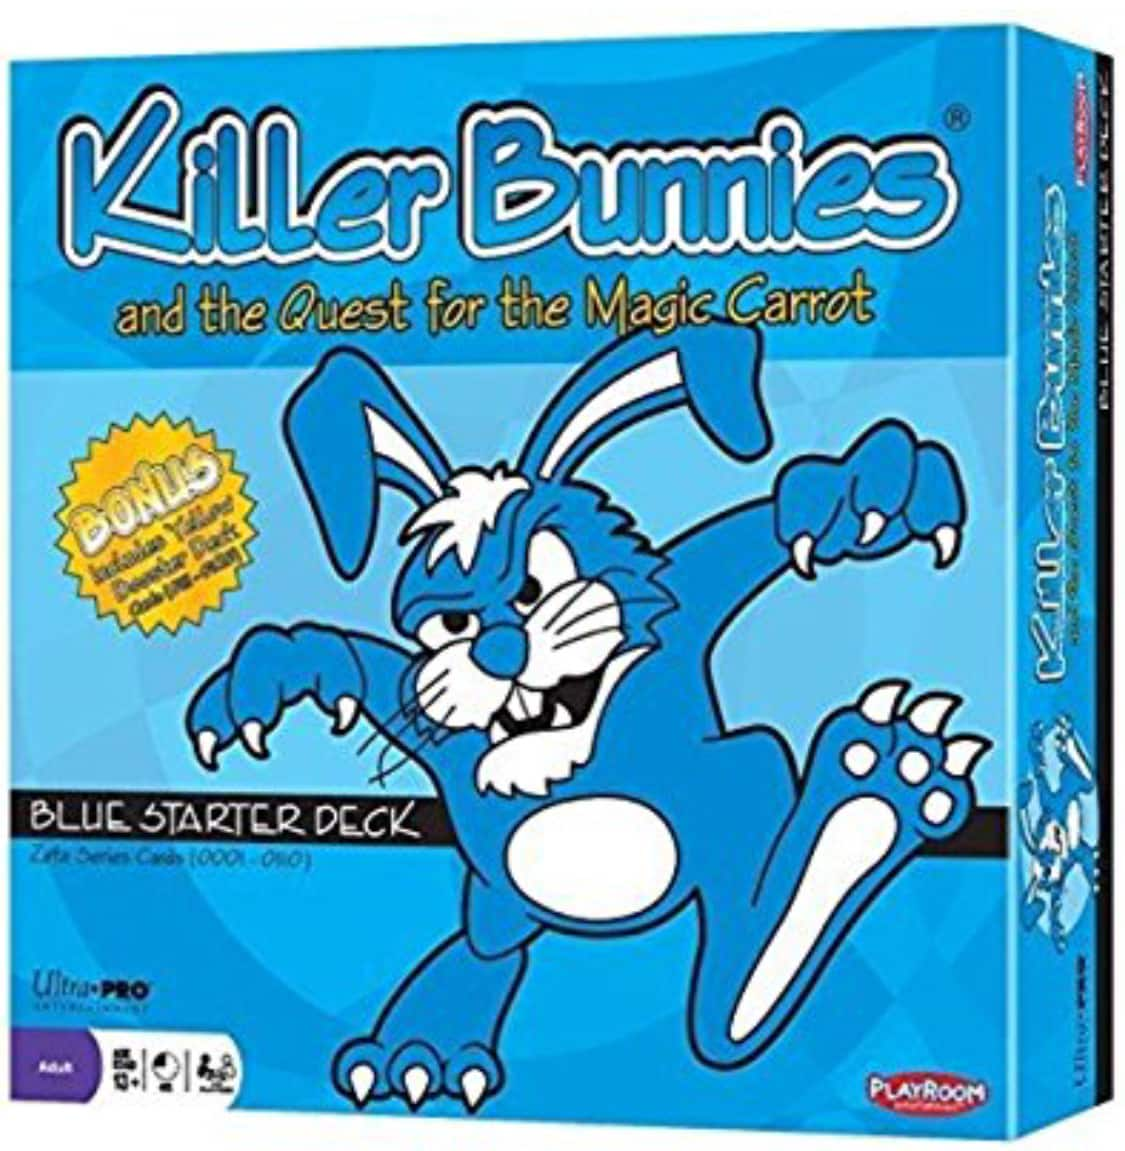 Amazon: $24.99 Killer Bunnies and the Quest for the Magic Carrot; Blue Starter Deck